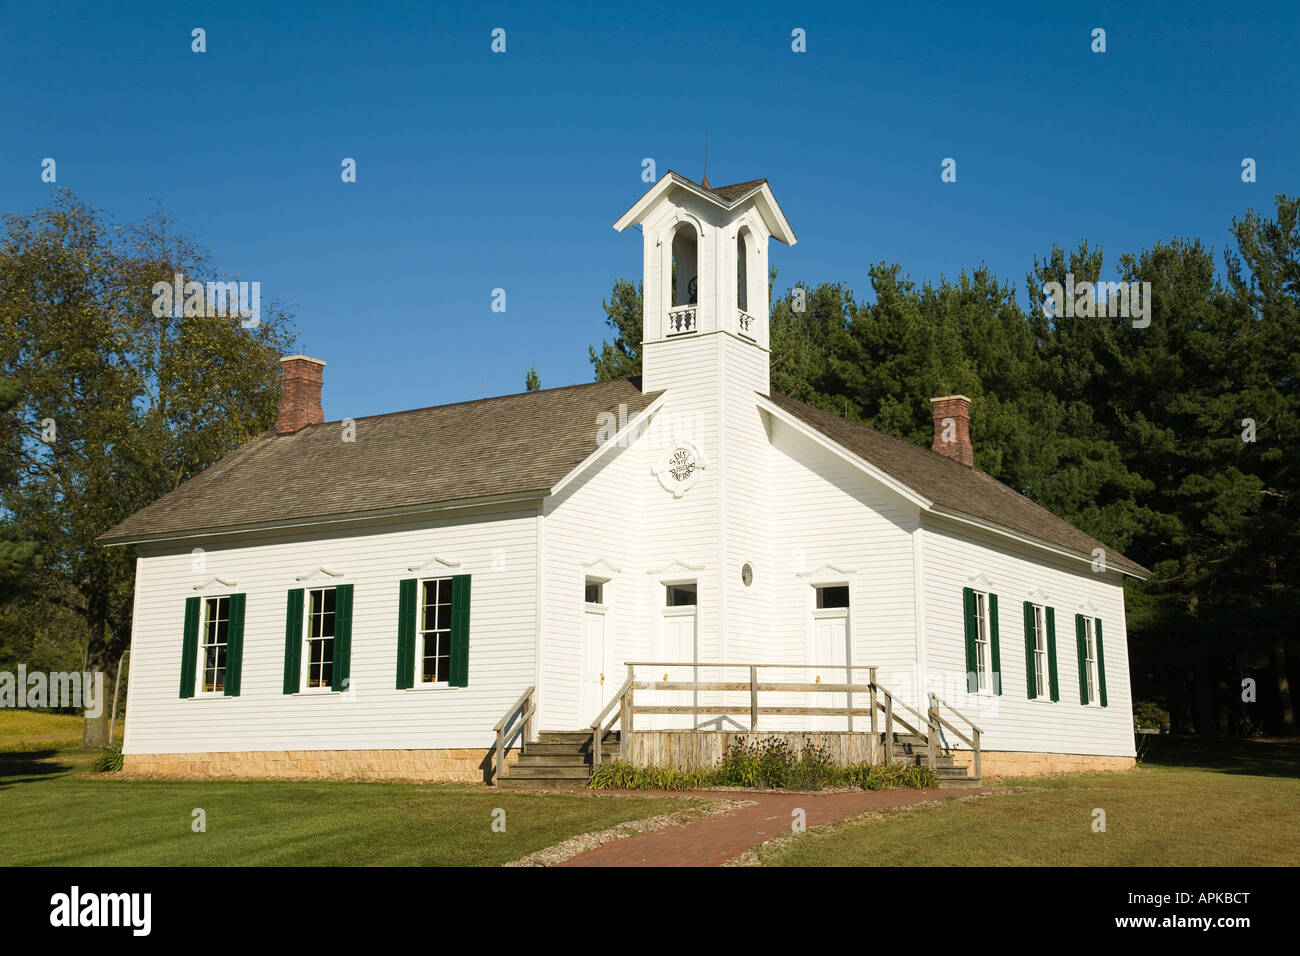 Illinois ogle county oregon - Illinois Ogle County Chana Two Room Schoolhouse Museum Registered Historic Building White Wooden Building Stock